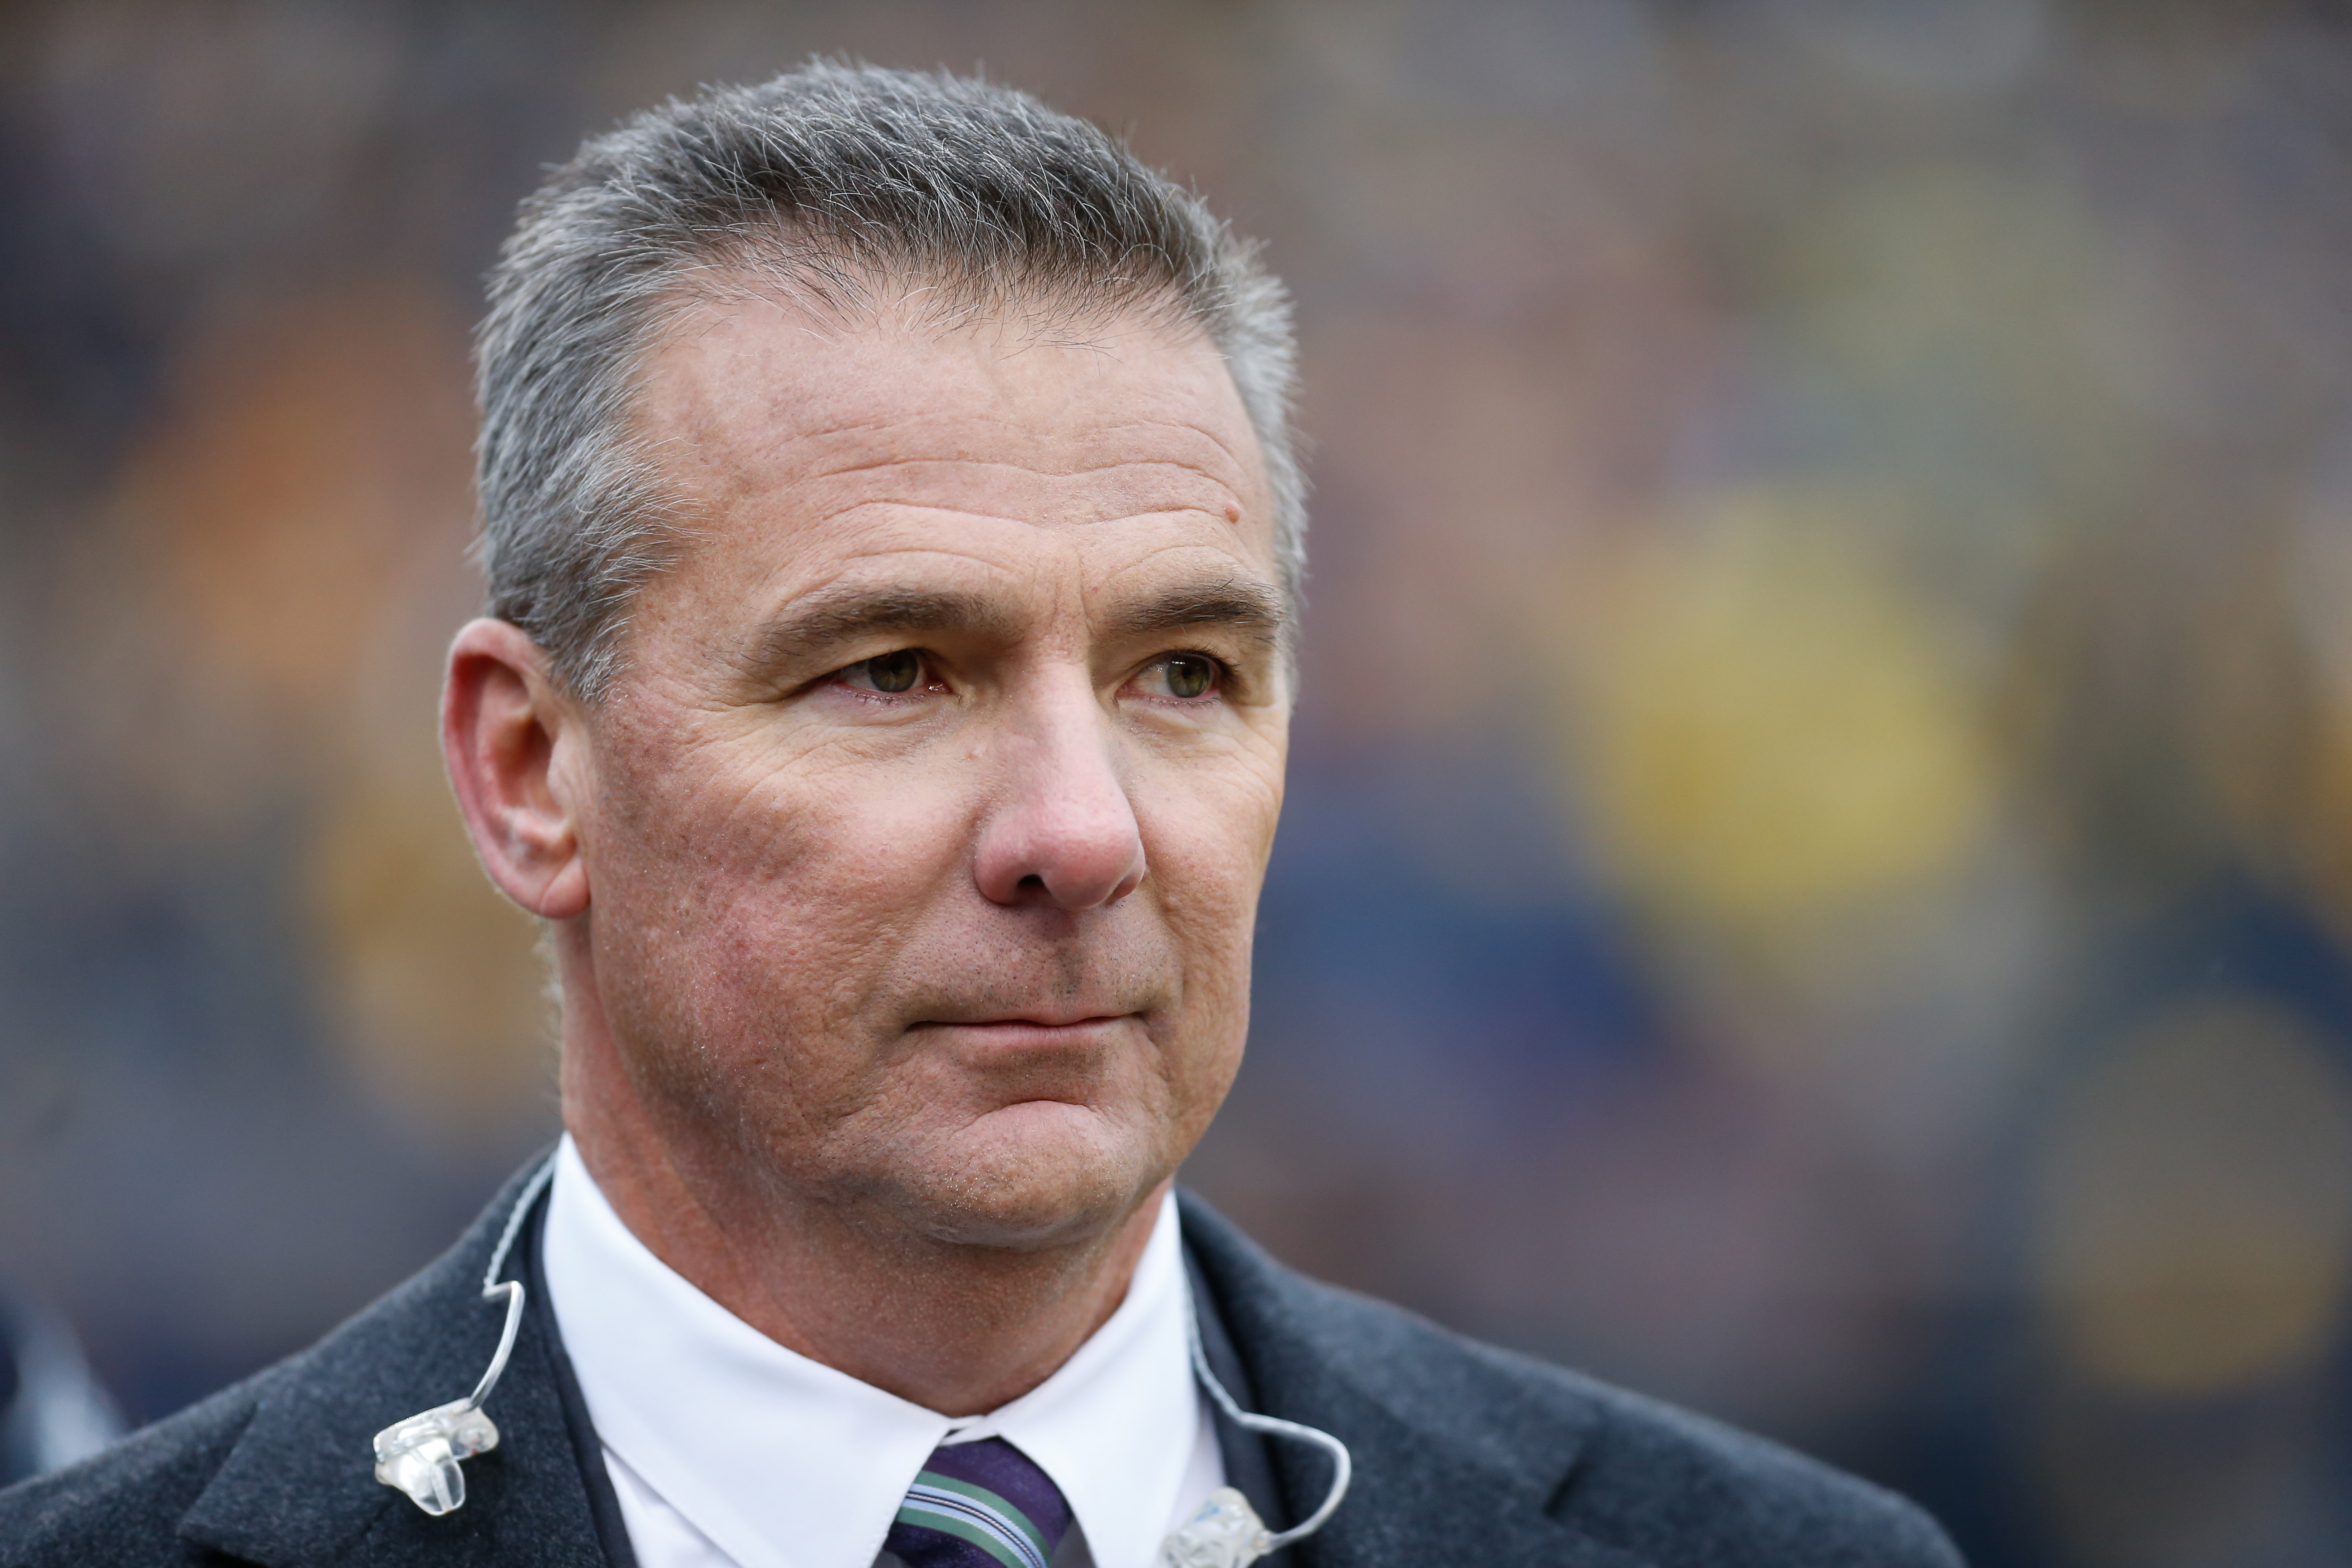 New Jacksonville Jaguars head coach Urban Meyer had a legendary college football coaching career. Nearly 60 of his ex-college players are now in the NFL.